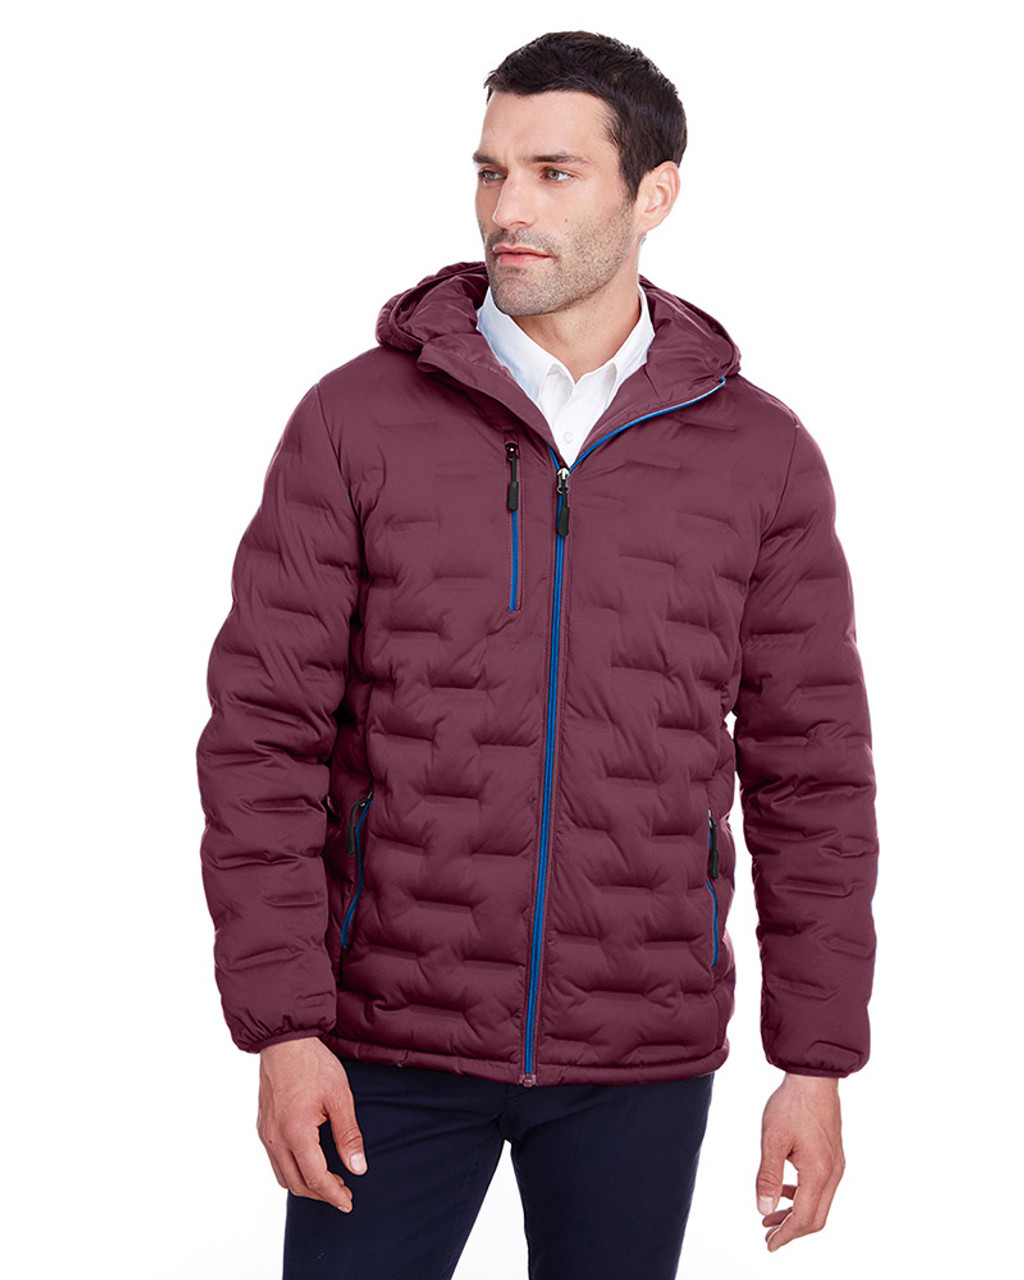 Burgundy/Olympic Blue - NE708 North End Men's Loft Puffer Jacket | Blankclothing.ca